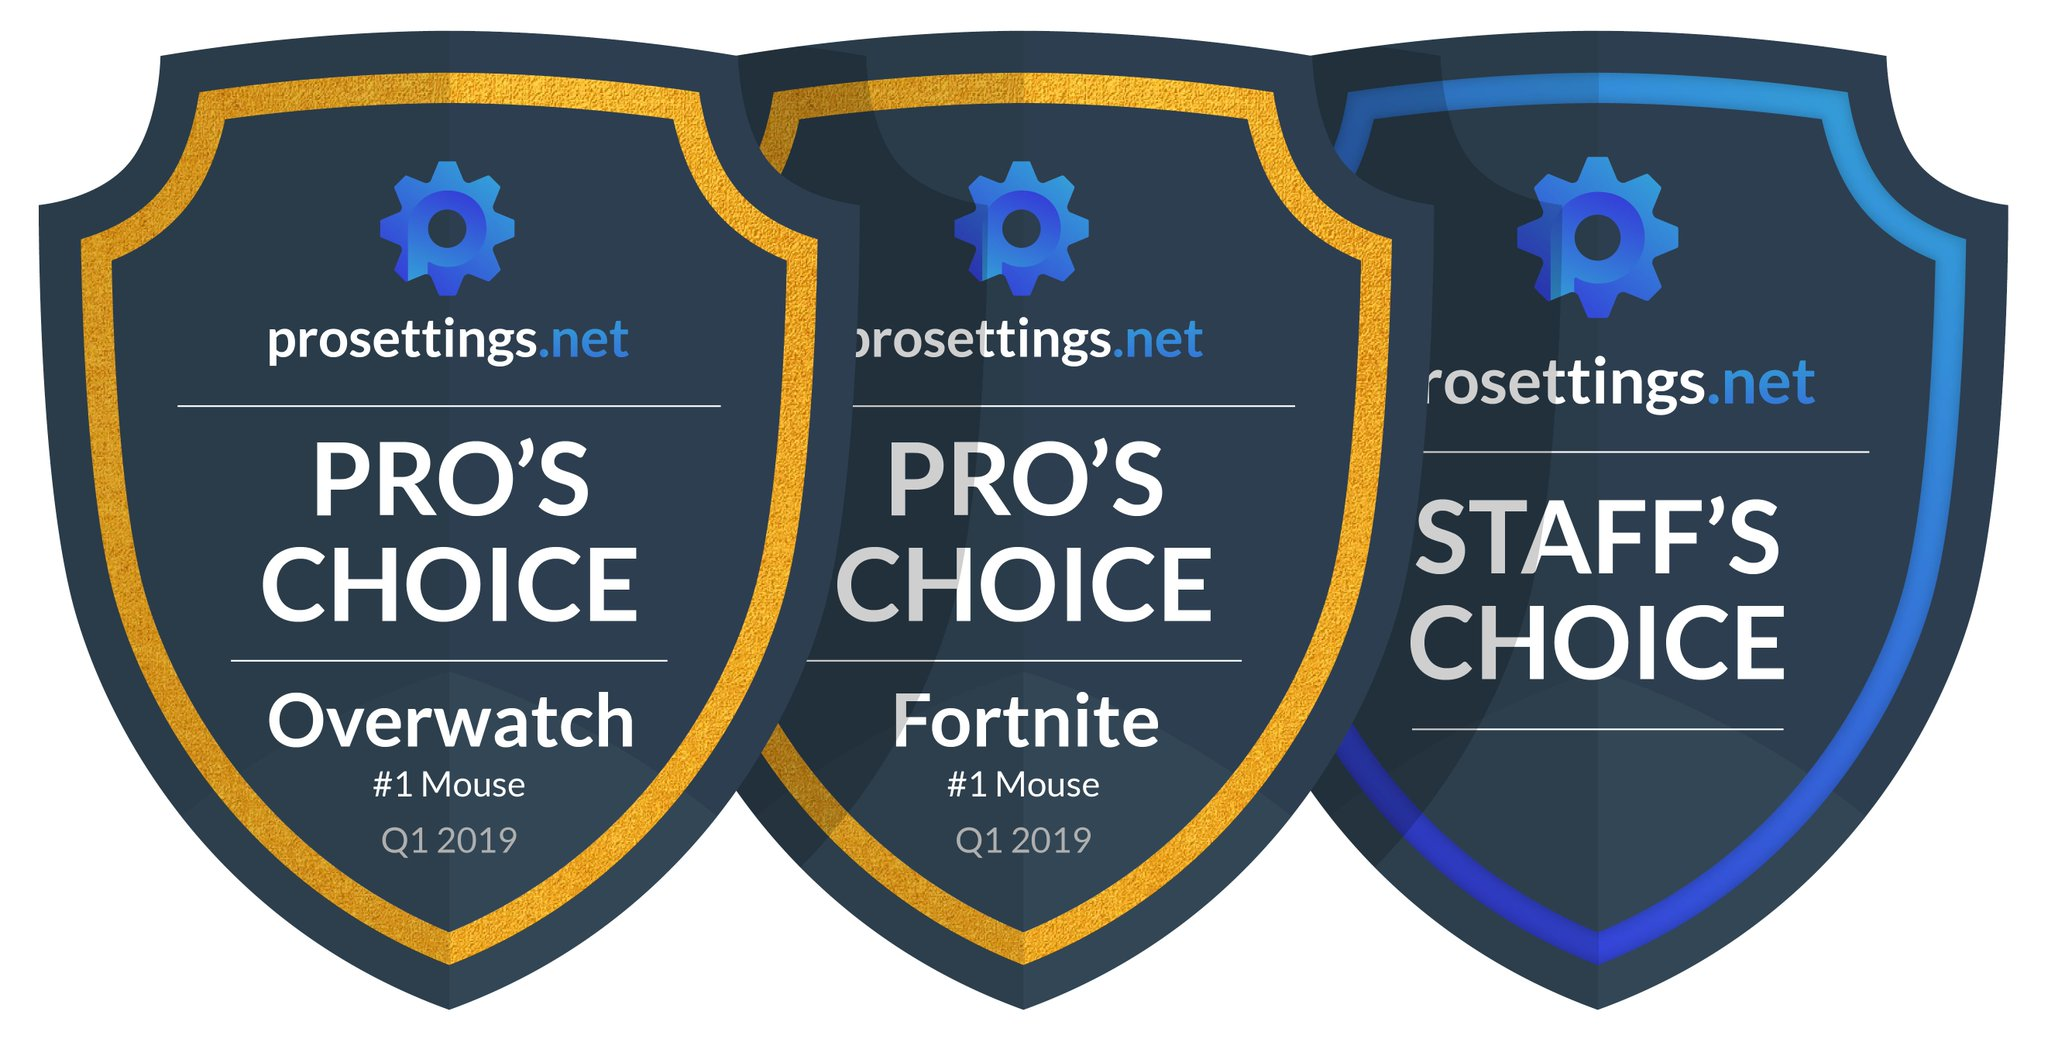 Prosettings Net On Twitter This Week We Launched Our Awards Program Pro S Choice Awards Are Given Out At The End Of Each Quarter To Products That Have Been The Number One Drdisrespect apex legends settings 2019 + sensitivity! twitter